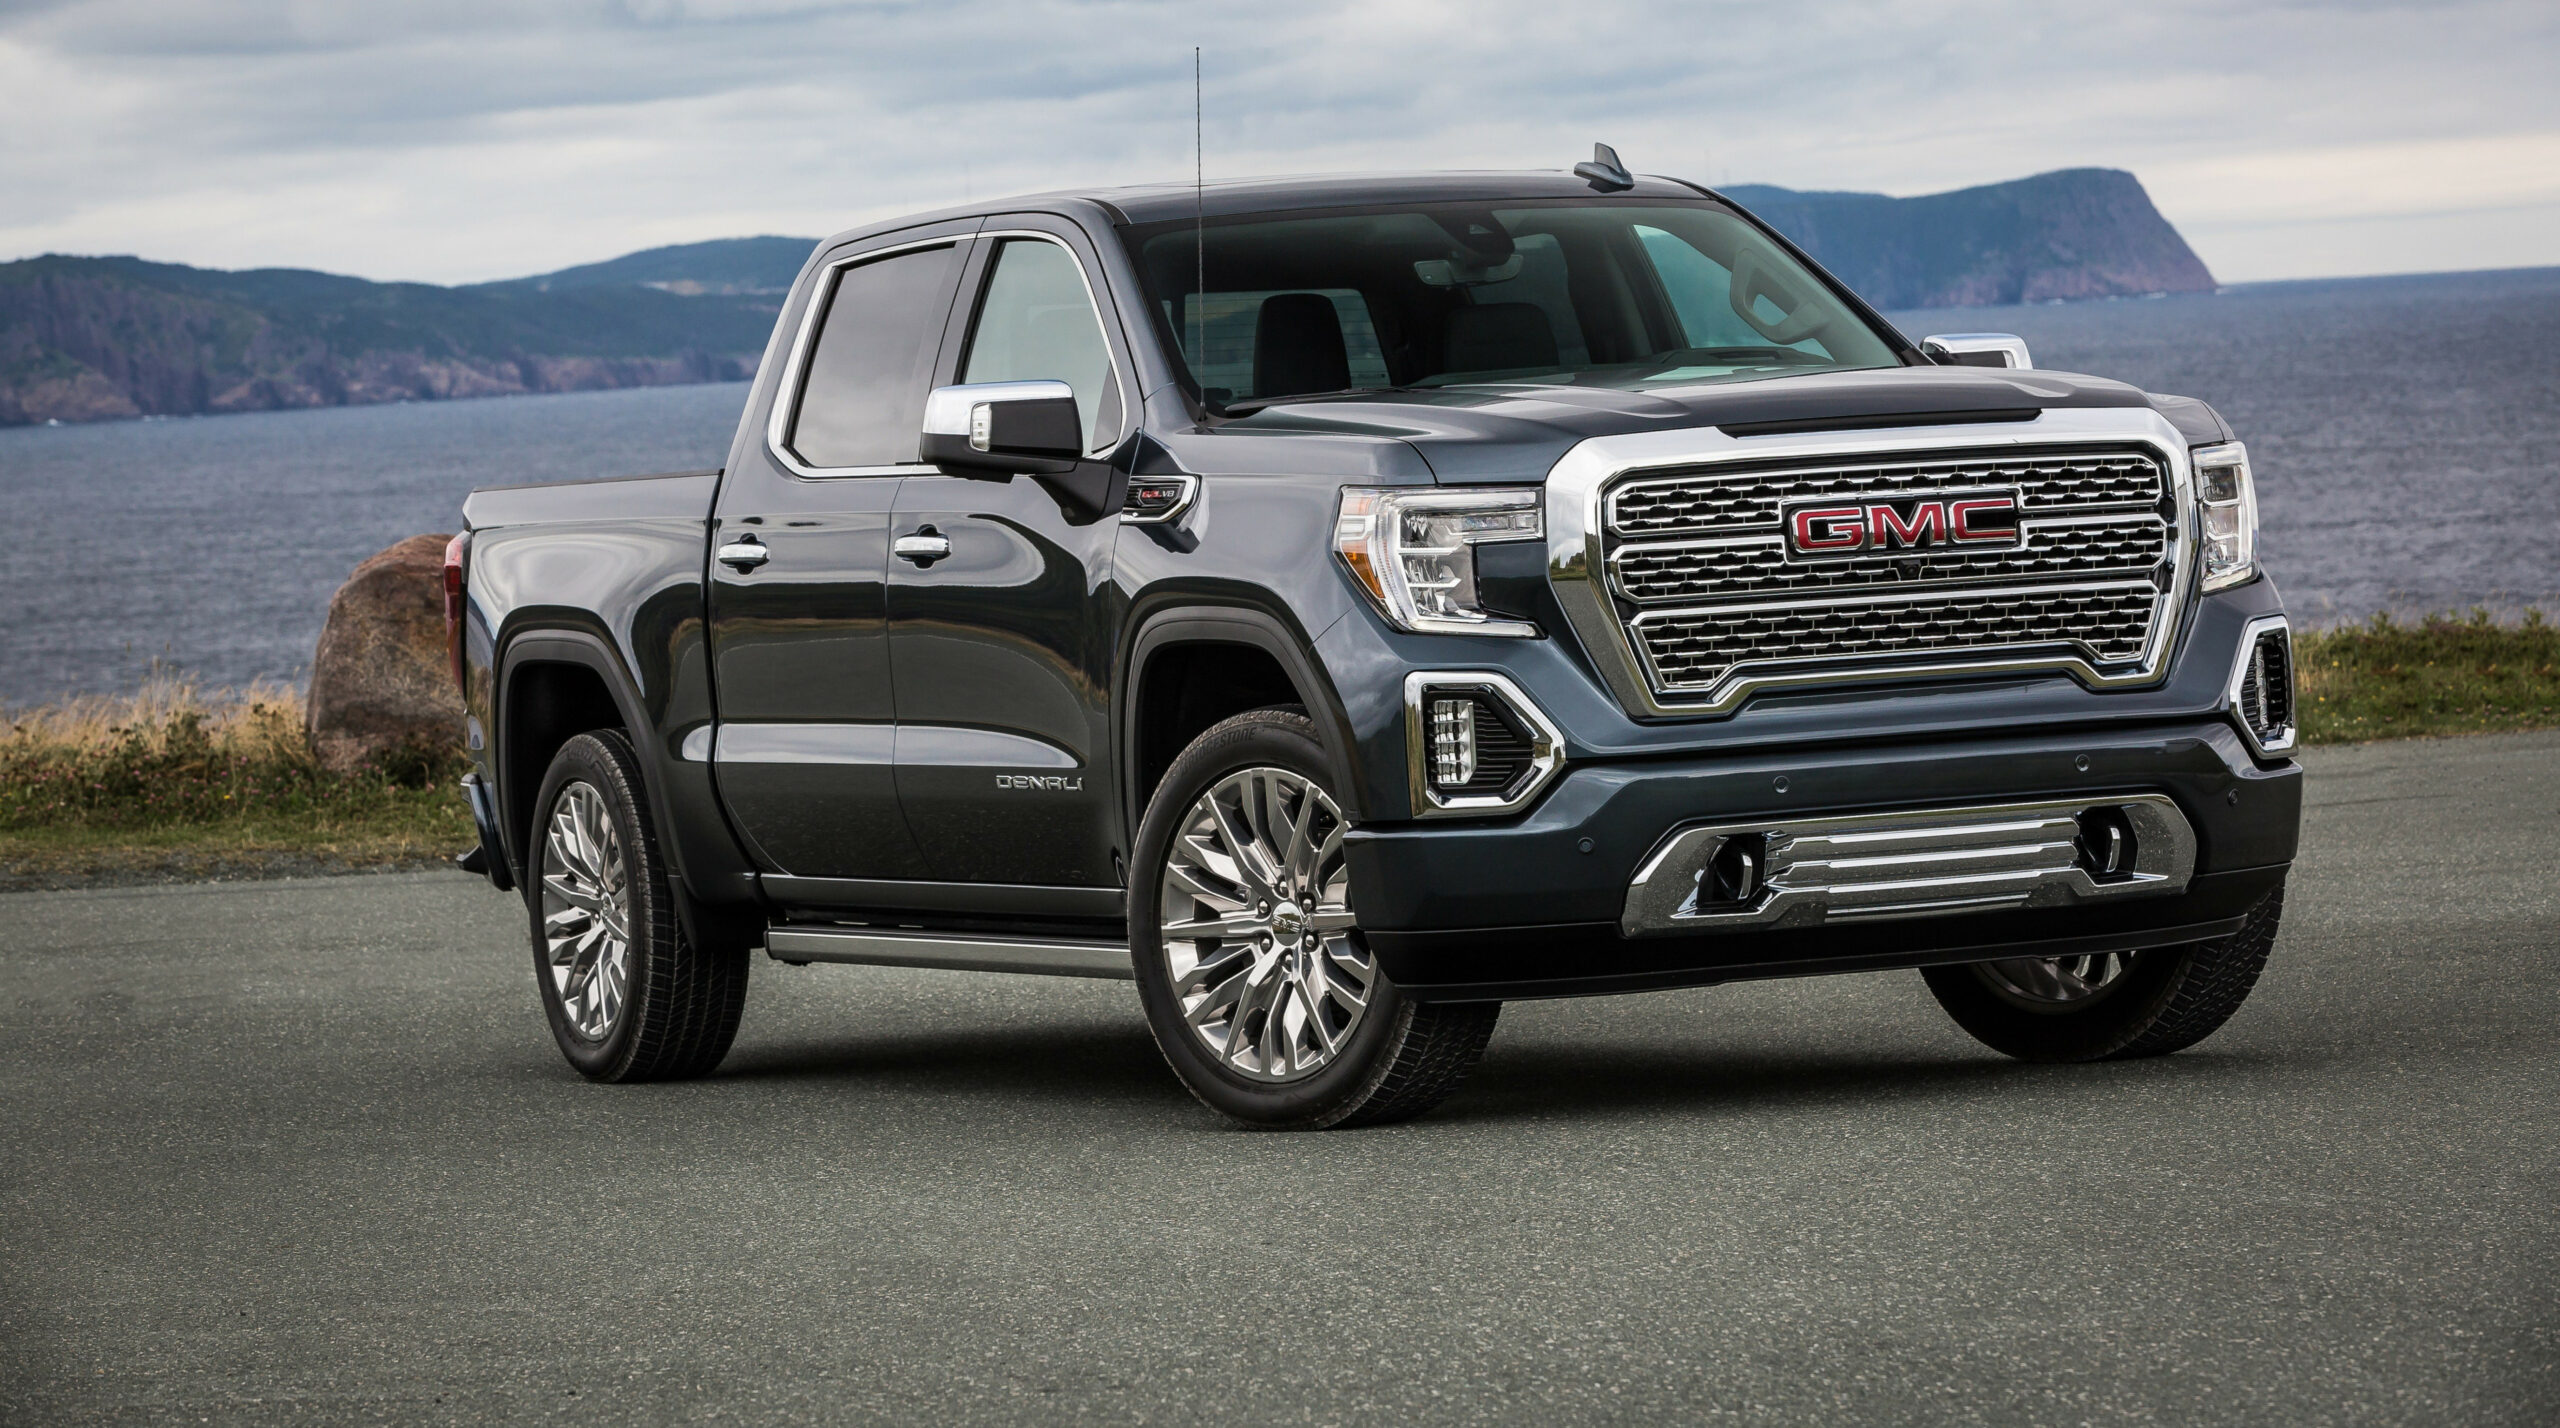 GMC® Sierra 8 Lease Deals & Prices - Cicero, NY - gmc rebates 2020 sierra